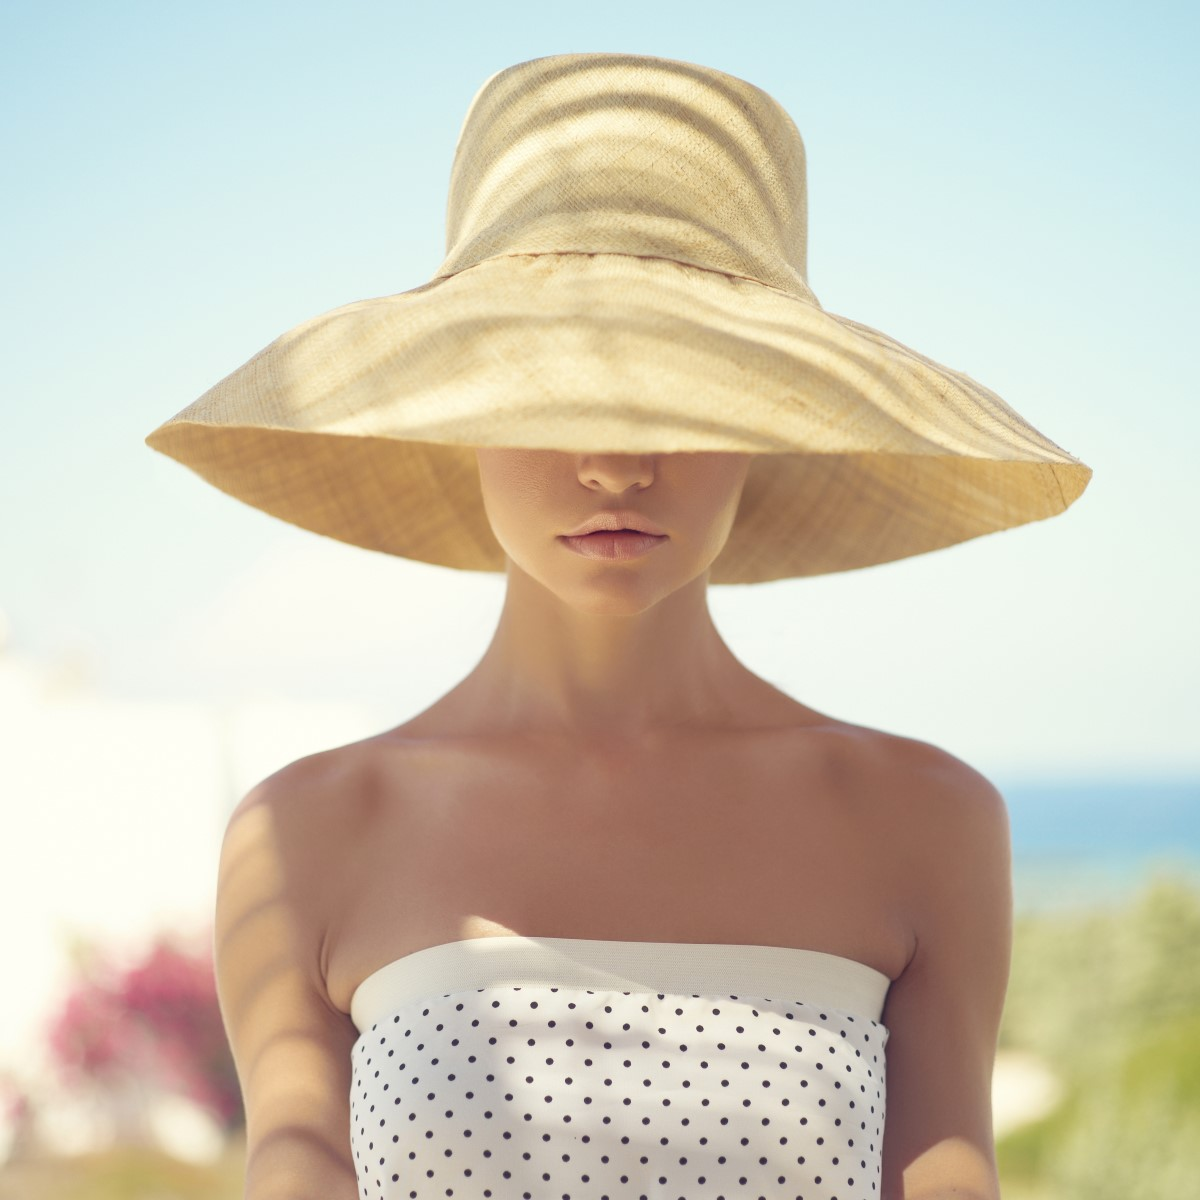 Beautiful young lady in straw hat in the sunlight